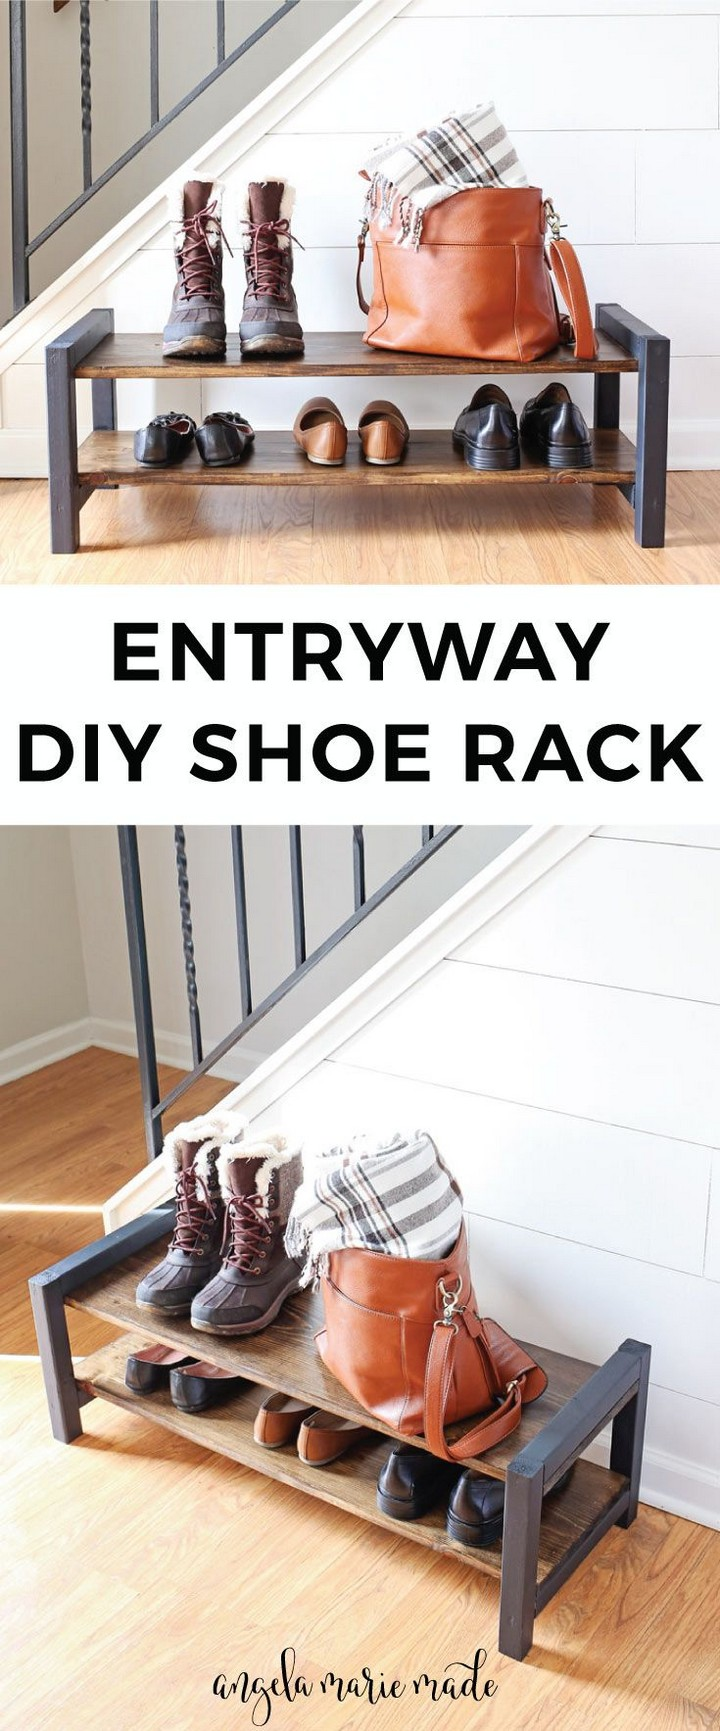 How to Build an Entryway DIY Shoe Rack